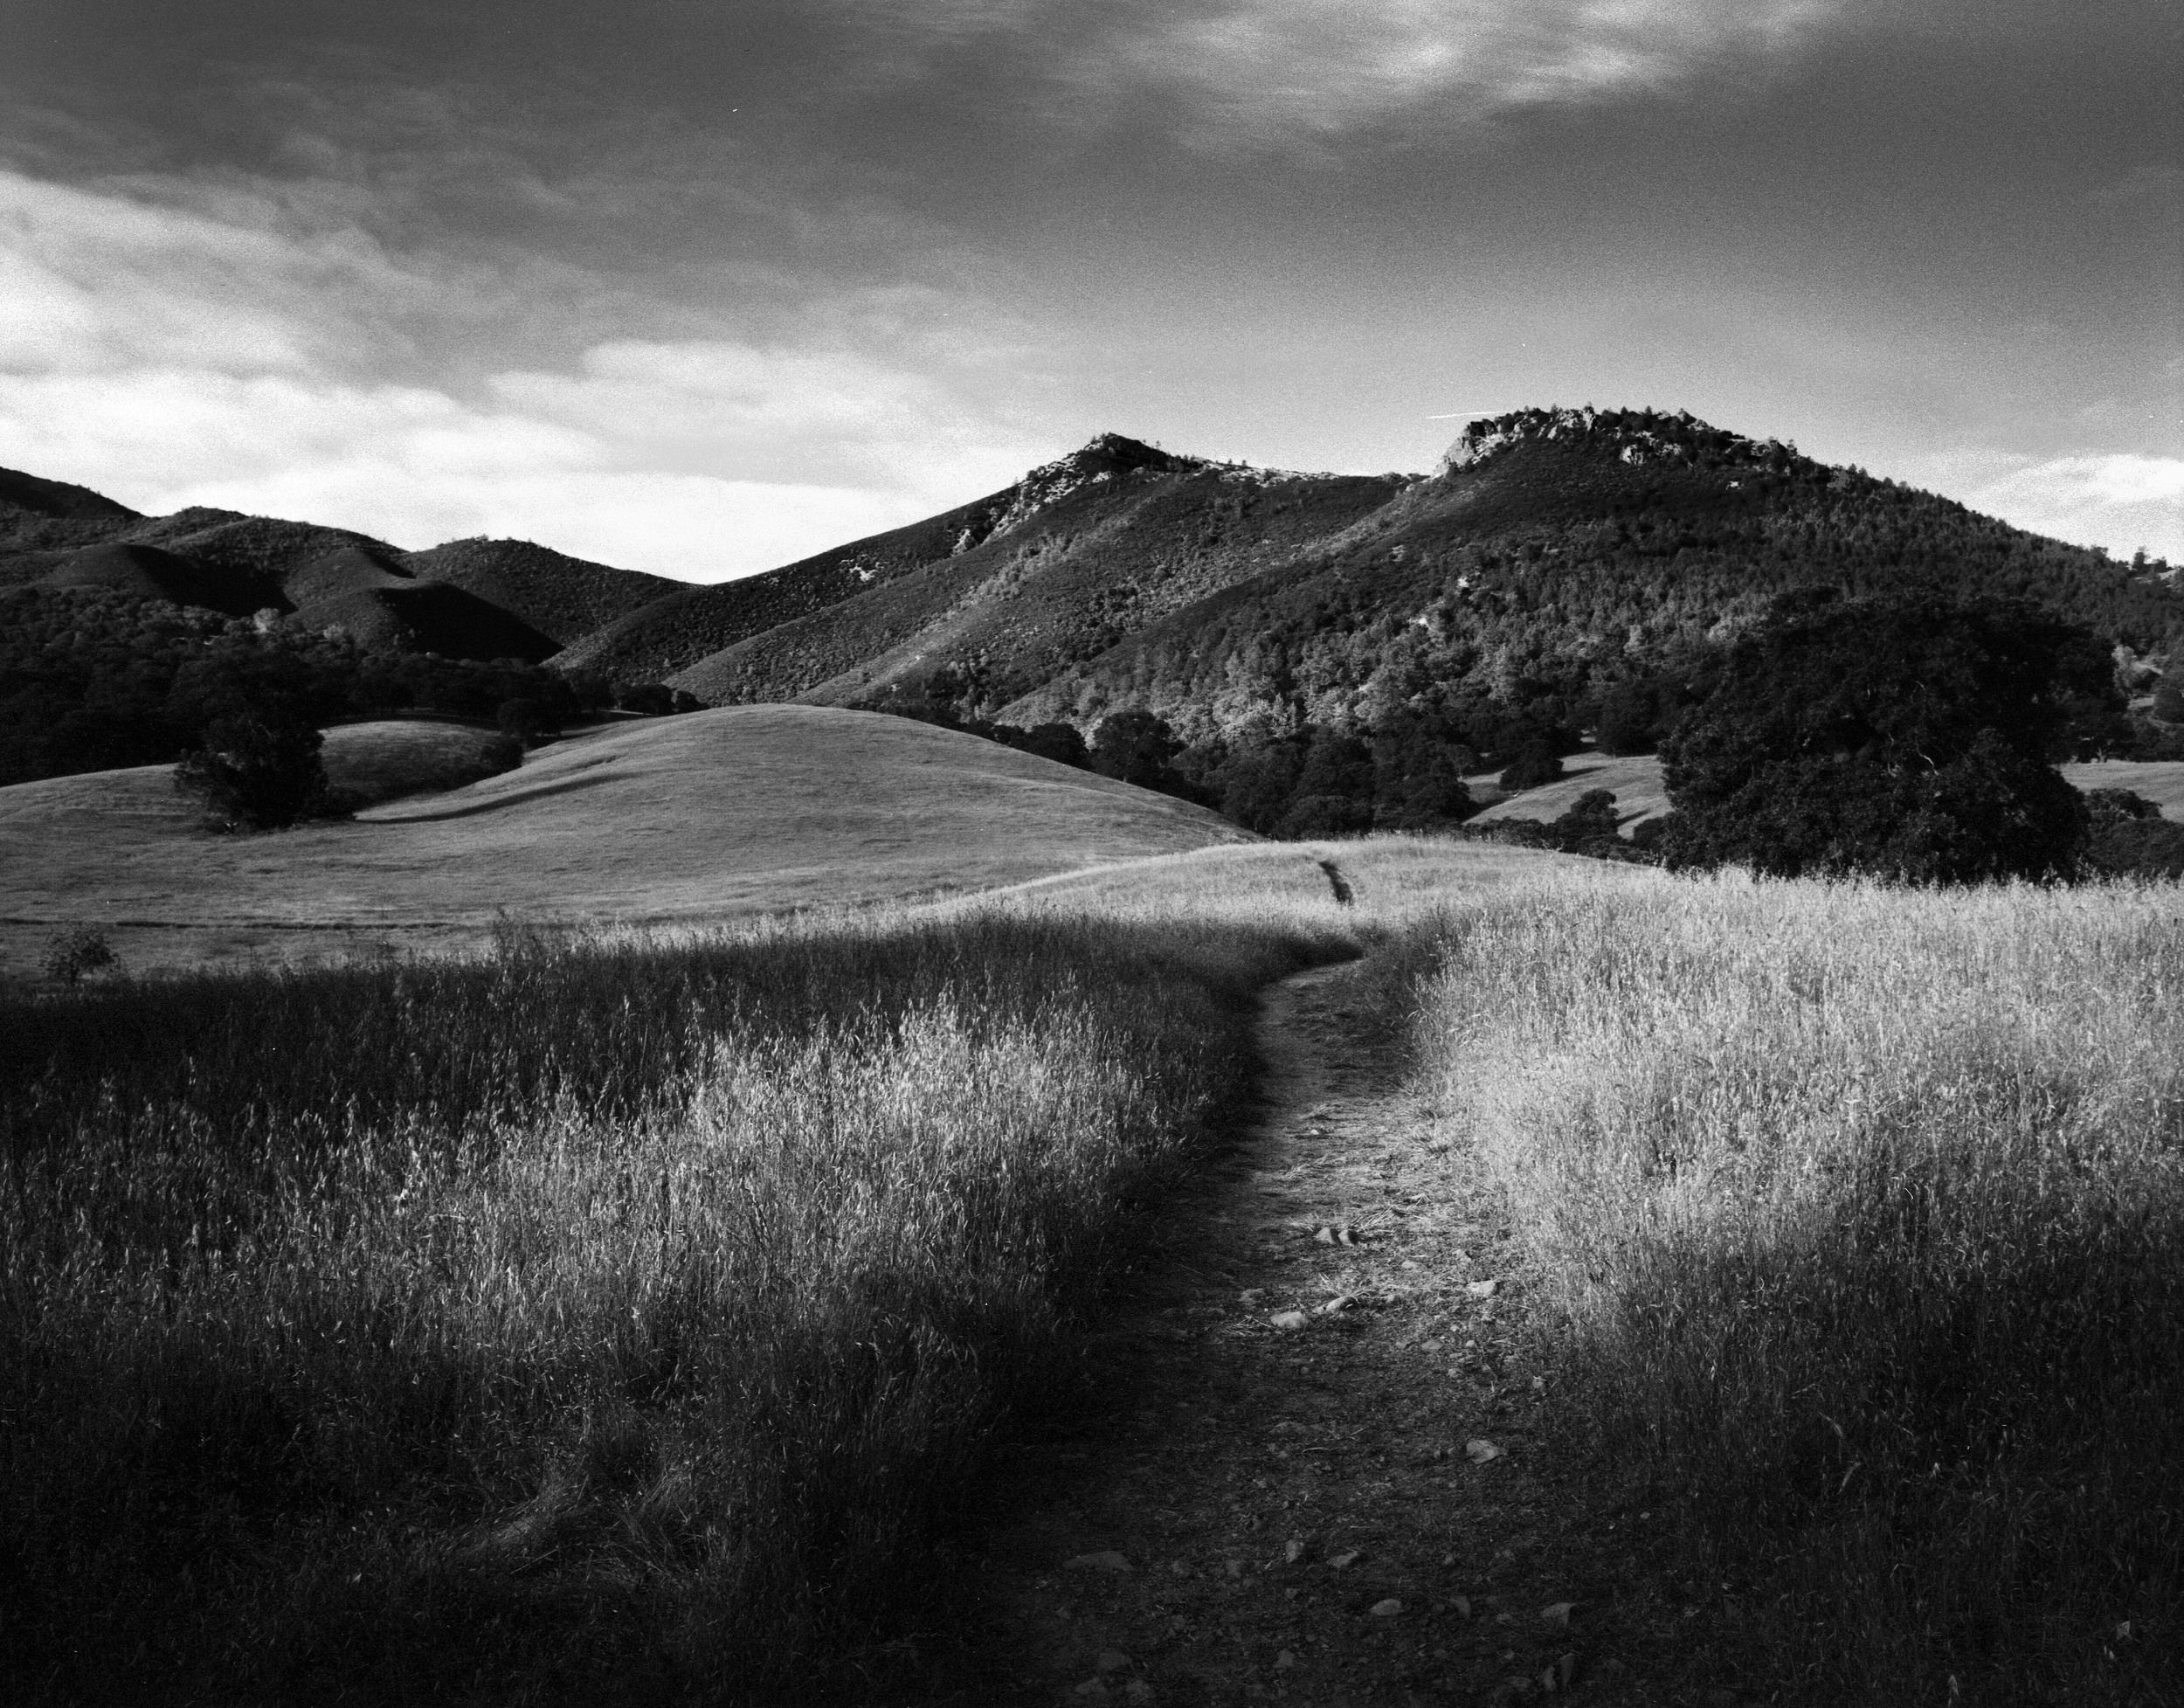 Path to Mt Zion, Mt Diablo 2011. I ditched my morning classes to take advantage of the morning light along the foothills of Mt Diablo. At this time my Pentax 6x7 was new to me and I was still learning with it. I used a deep orange filter for this shot and ended up under exposing it by ~1.5 stops but saved the shadow detail digitally after scanning the frame.